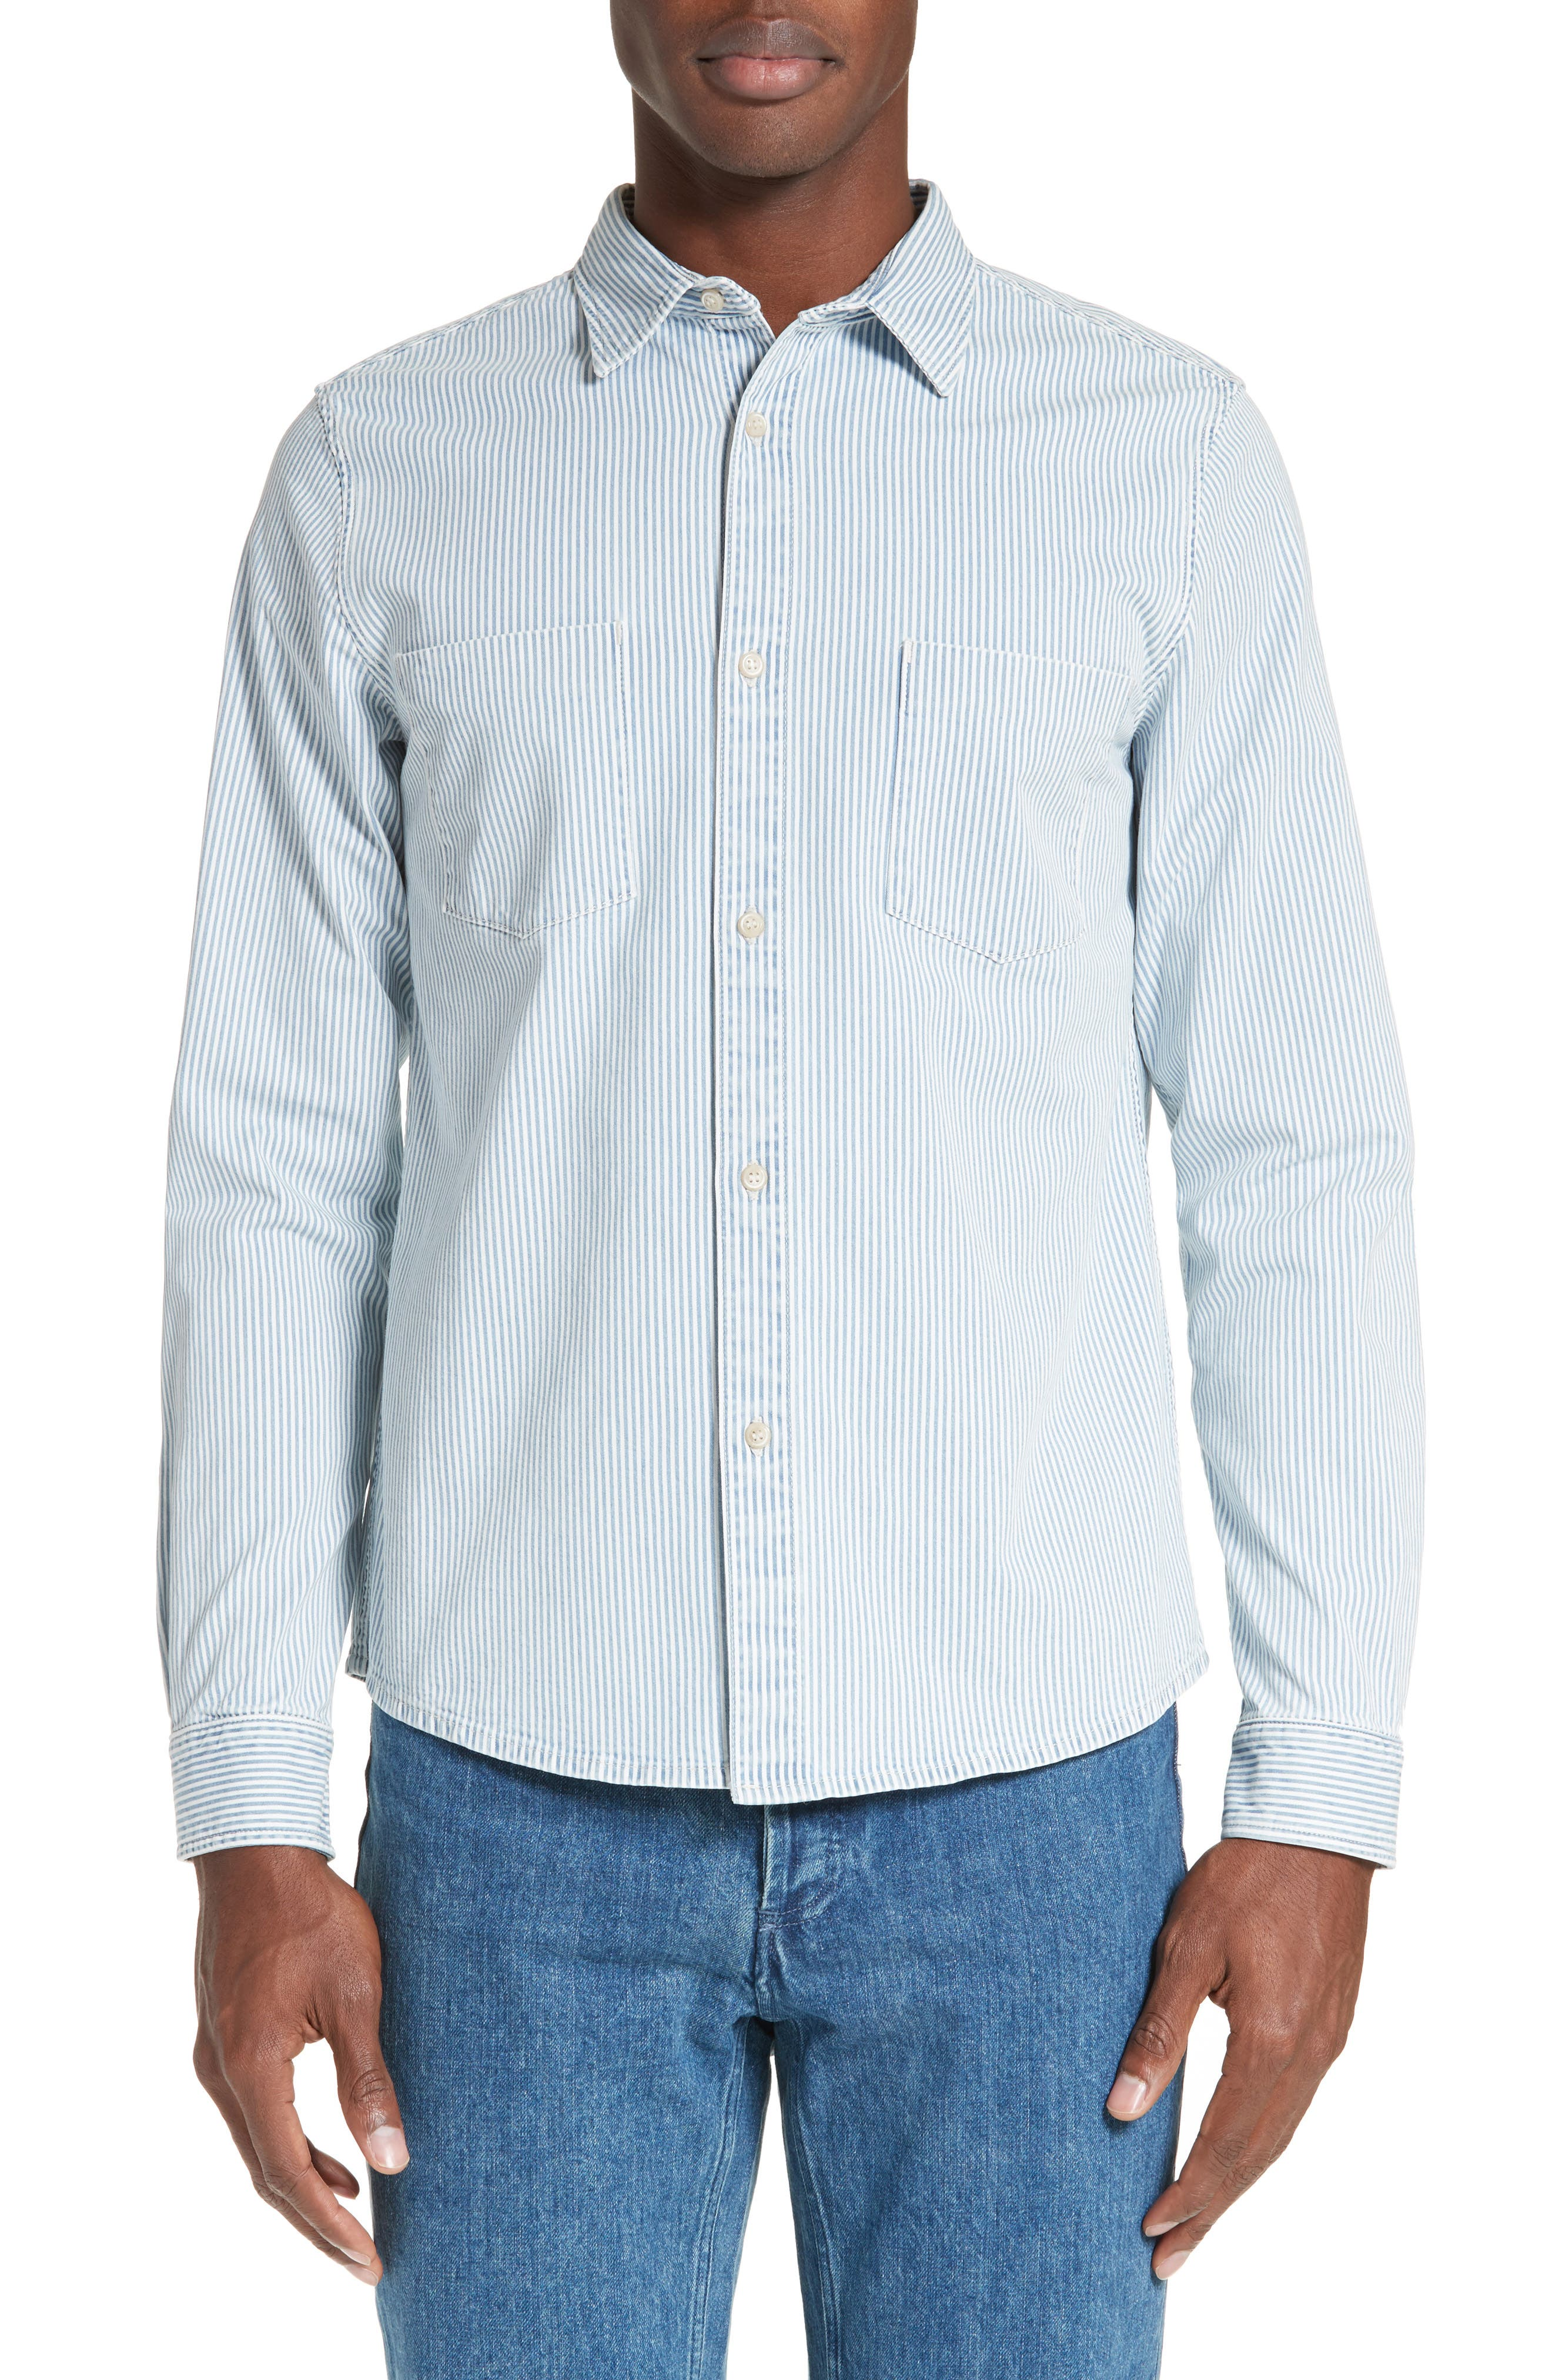 Riga Microstripe Denim Sport Shirt,                         Main,                         color, Indigo